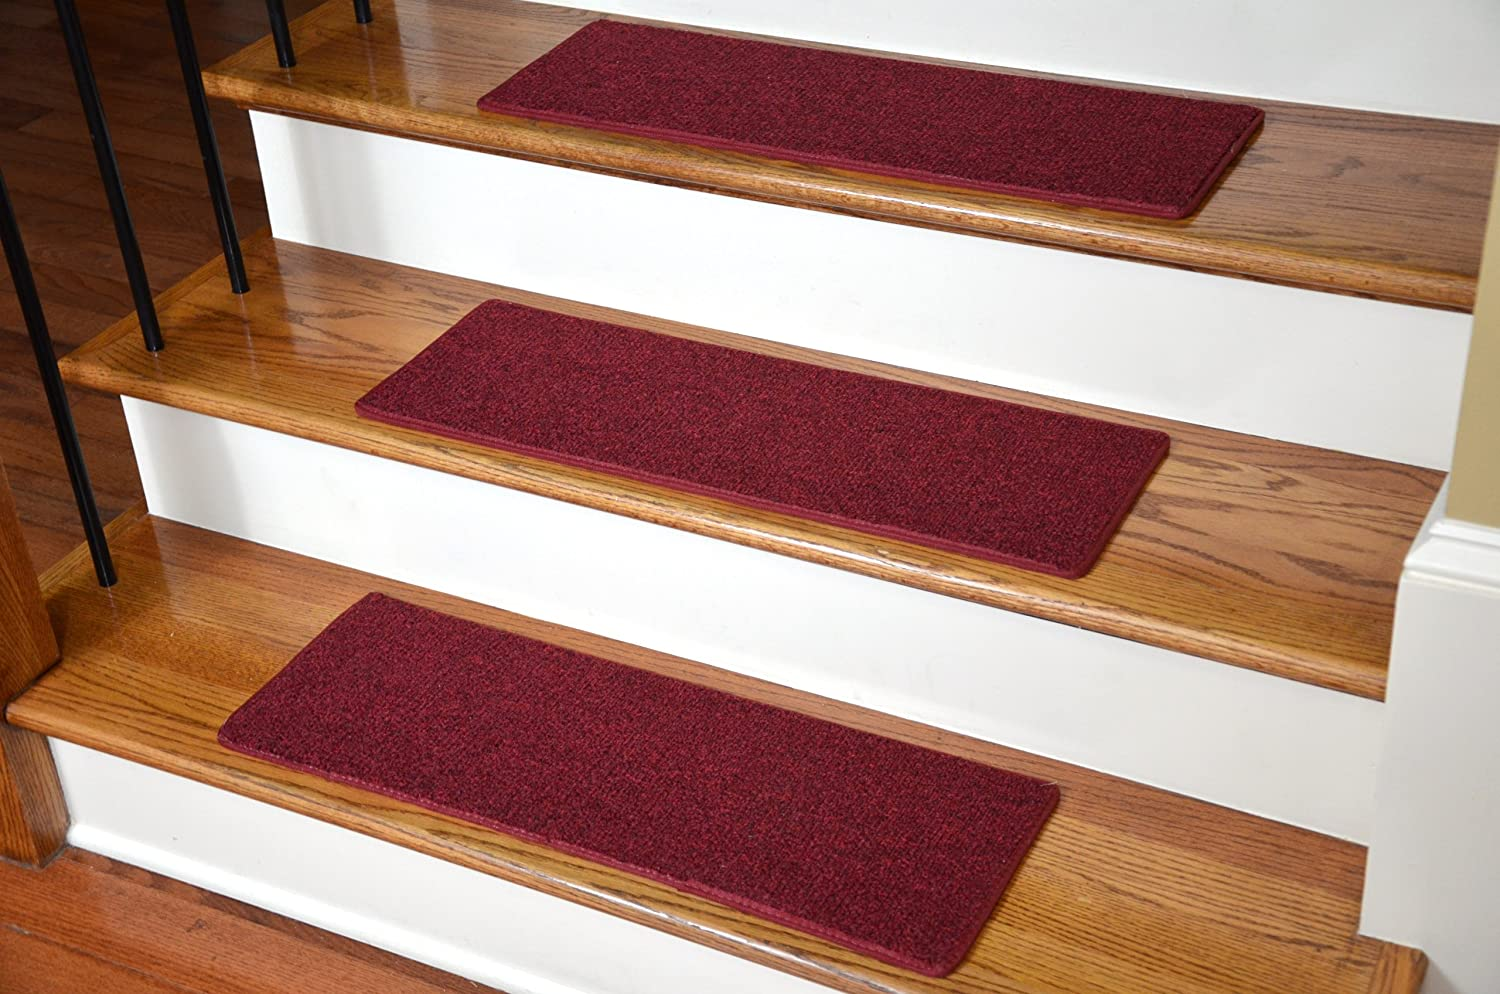 Rubber mats for stairs - Amazon Com Carpet Stair Treads 23 X 8 Red Set Of 13 Home Improvement